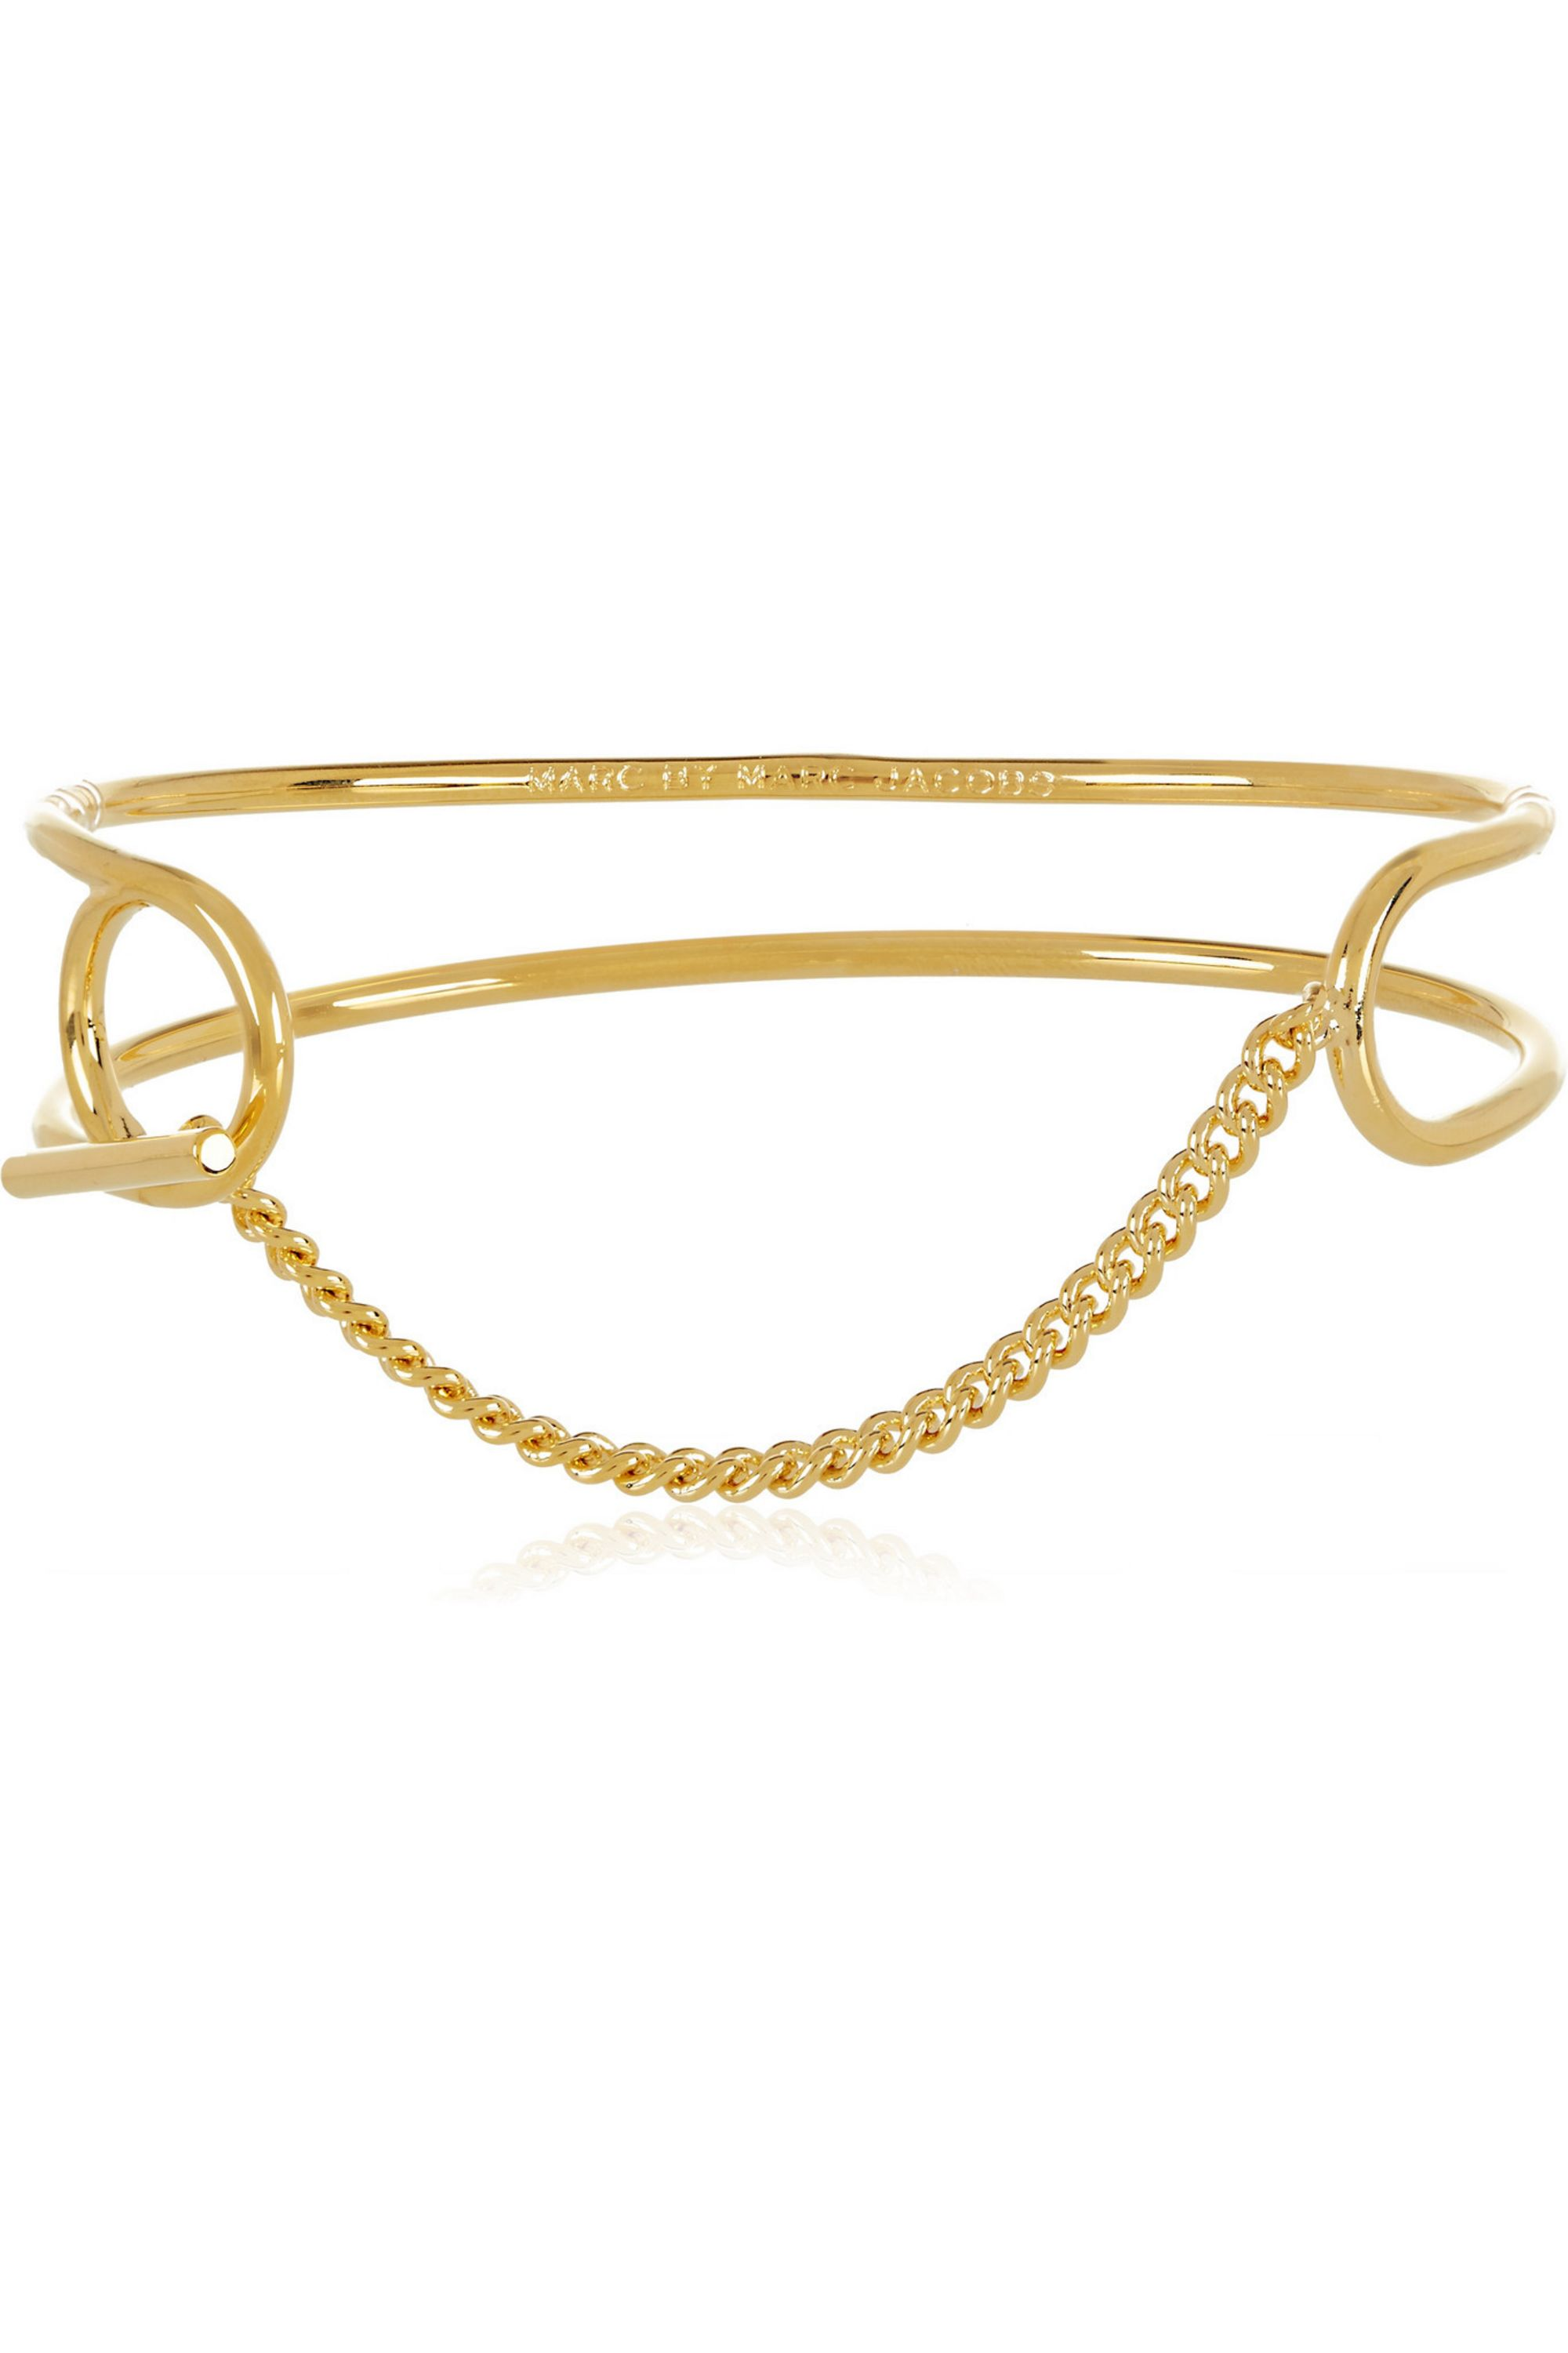 Marc by Marc Jacobs Gold-plated bracelet